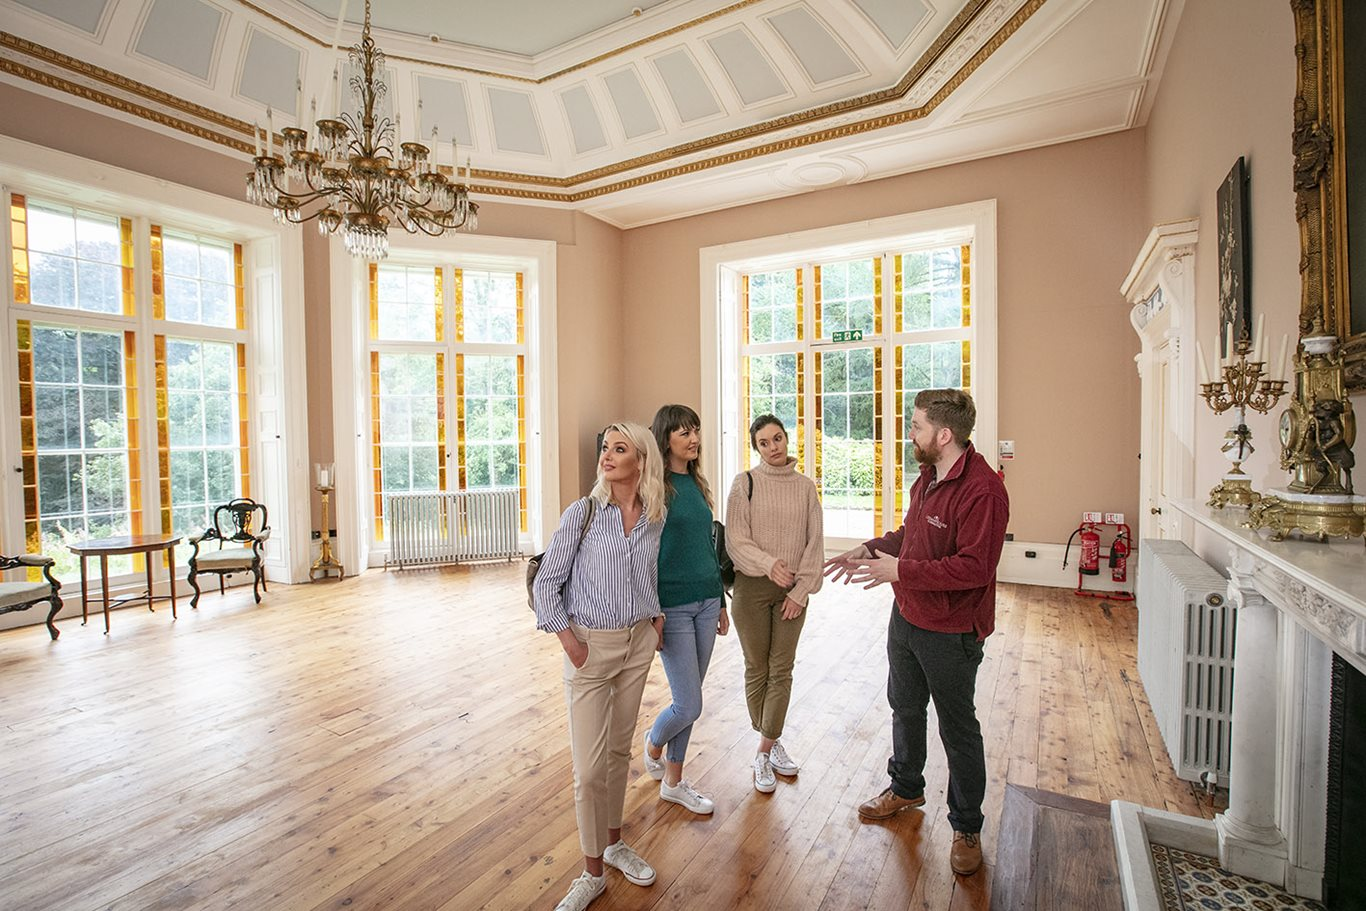 Inside the ballroom at Lissan House in Cookstown